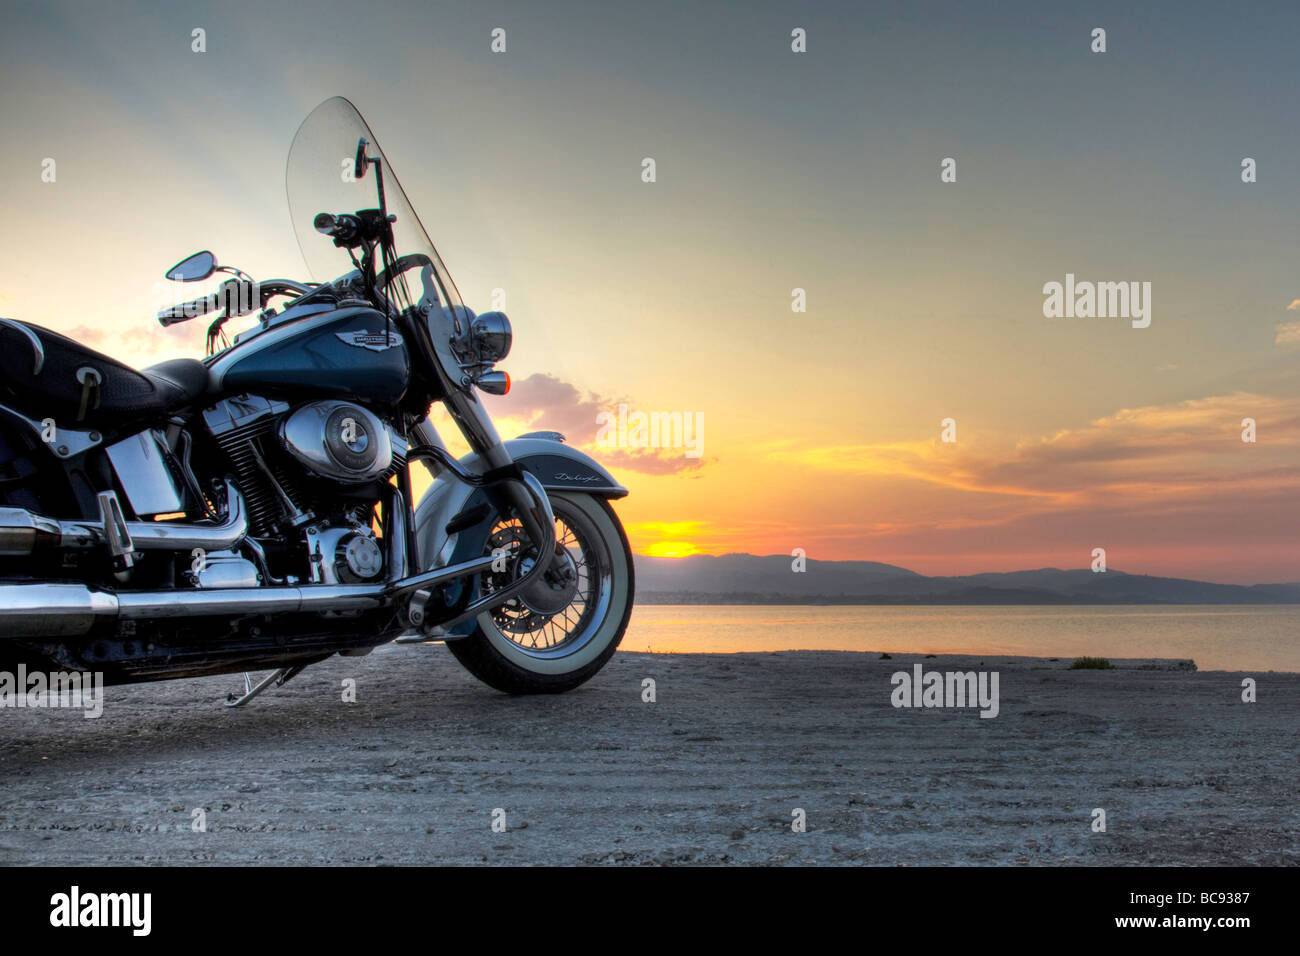 A harley davidson motorbike motorcycle taking in the sunset as the sun goes down on the day - Stock Image